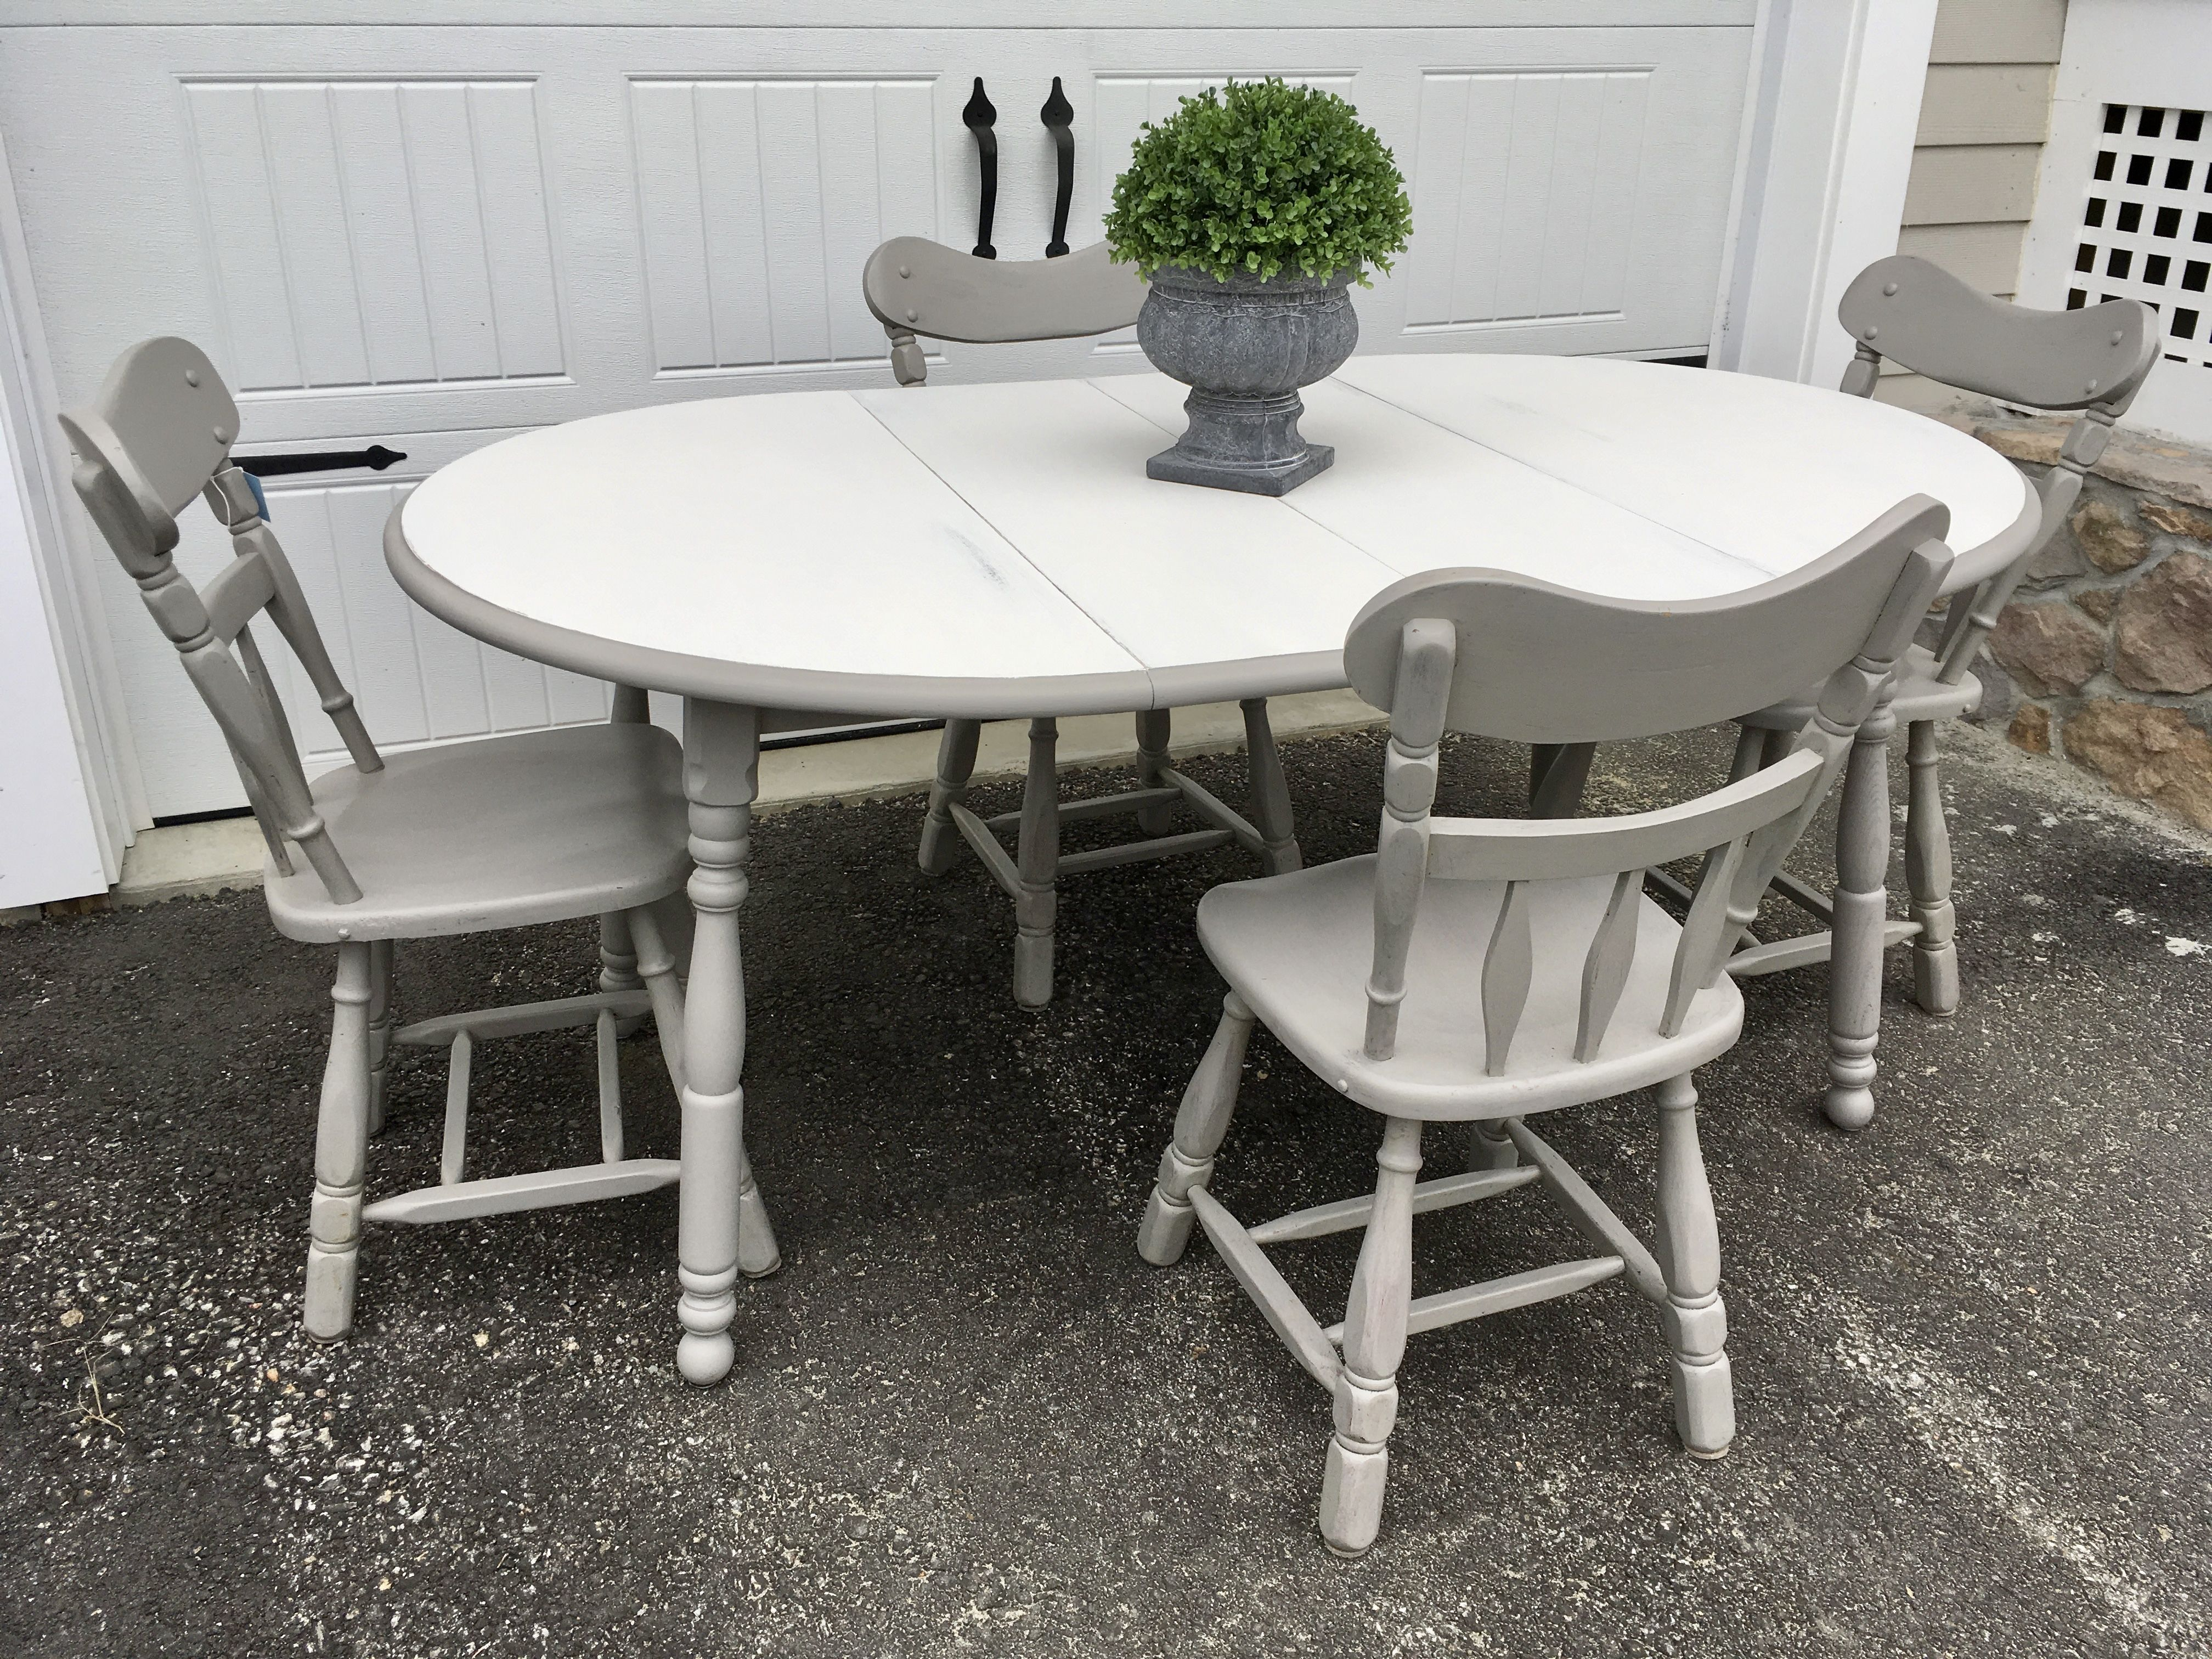 Farmhouse Kitchen Table And Vintage Chairschairs Were Made In Adorable Kitchen Table Chairs Design Inspiration